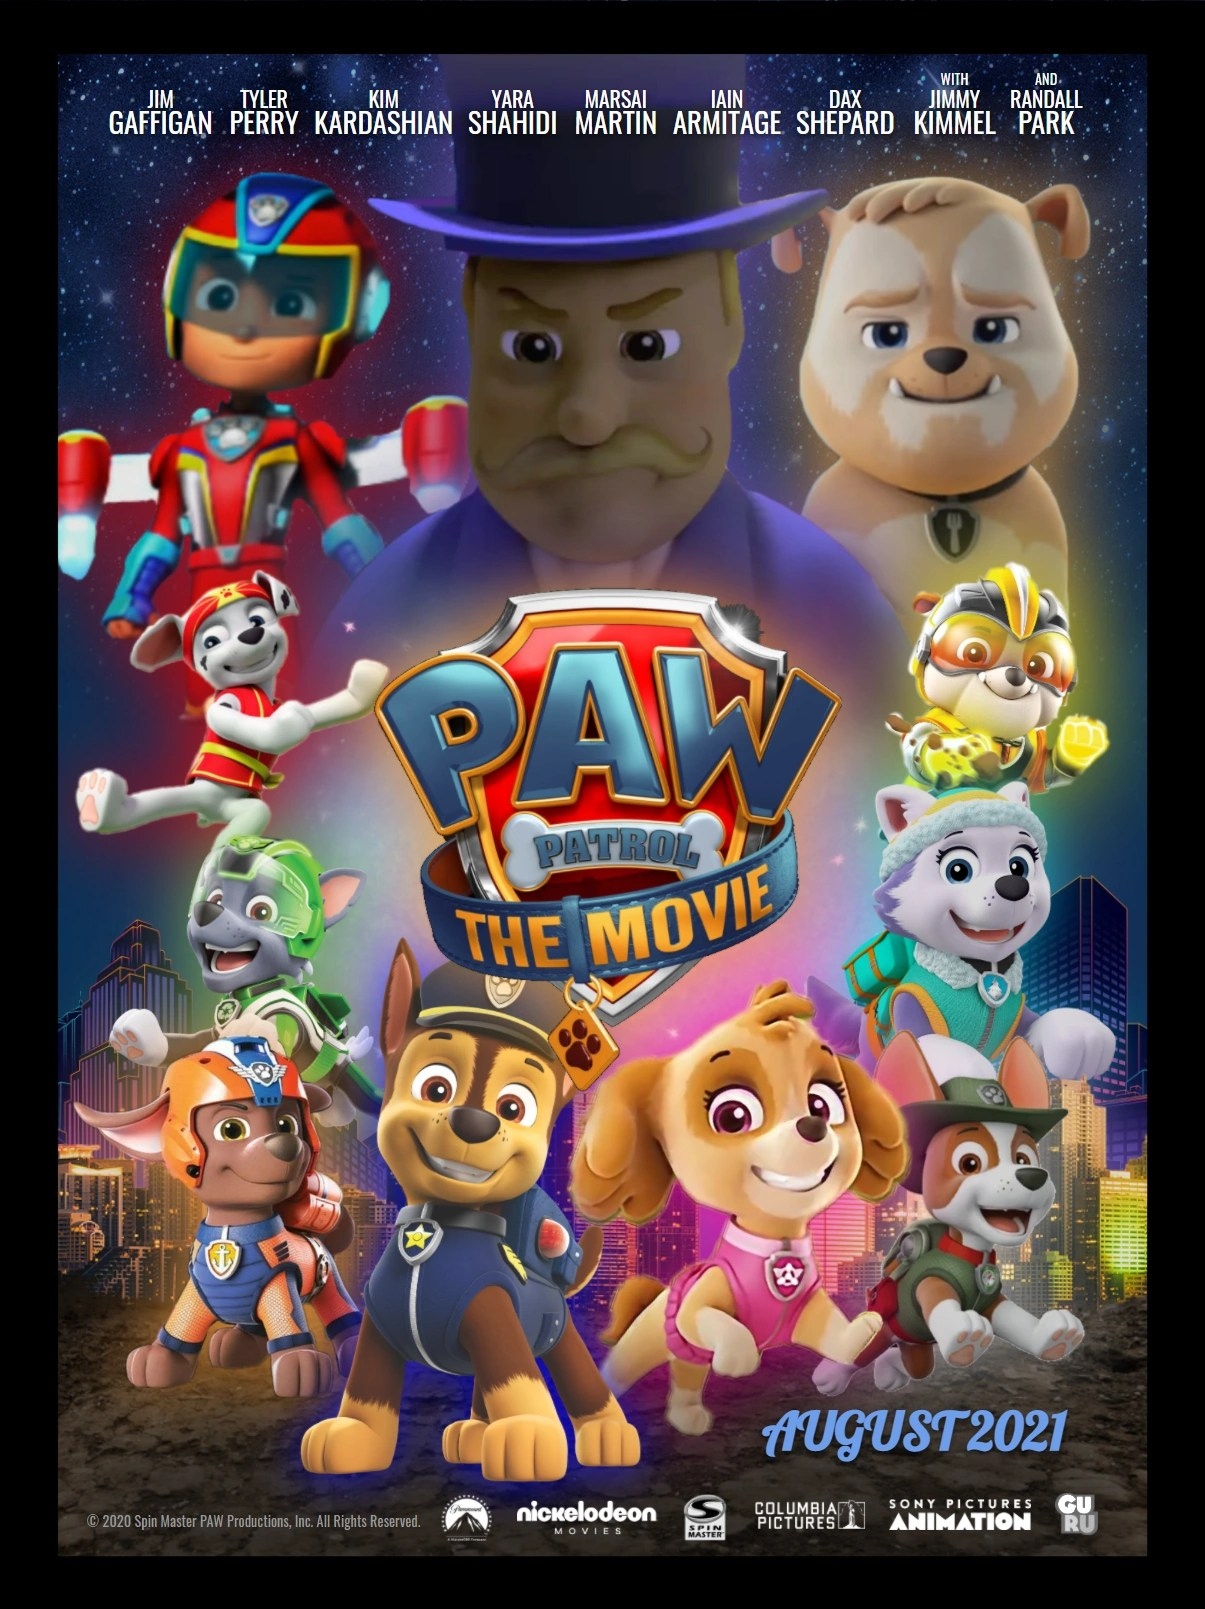 When Does Paw Patrol Movie Come Out : patrol, movie, Patrol:, Movie, (2020, Director's, Patrol, Fanon, Fandom